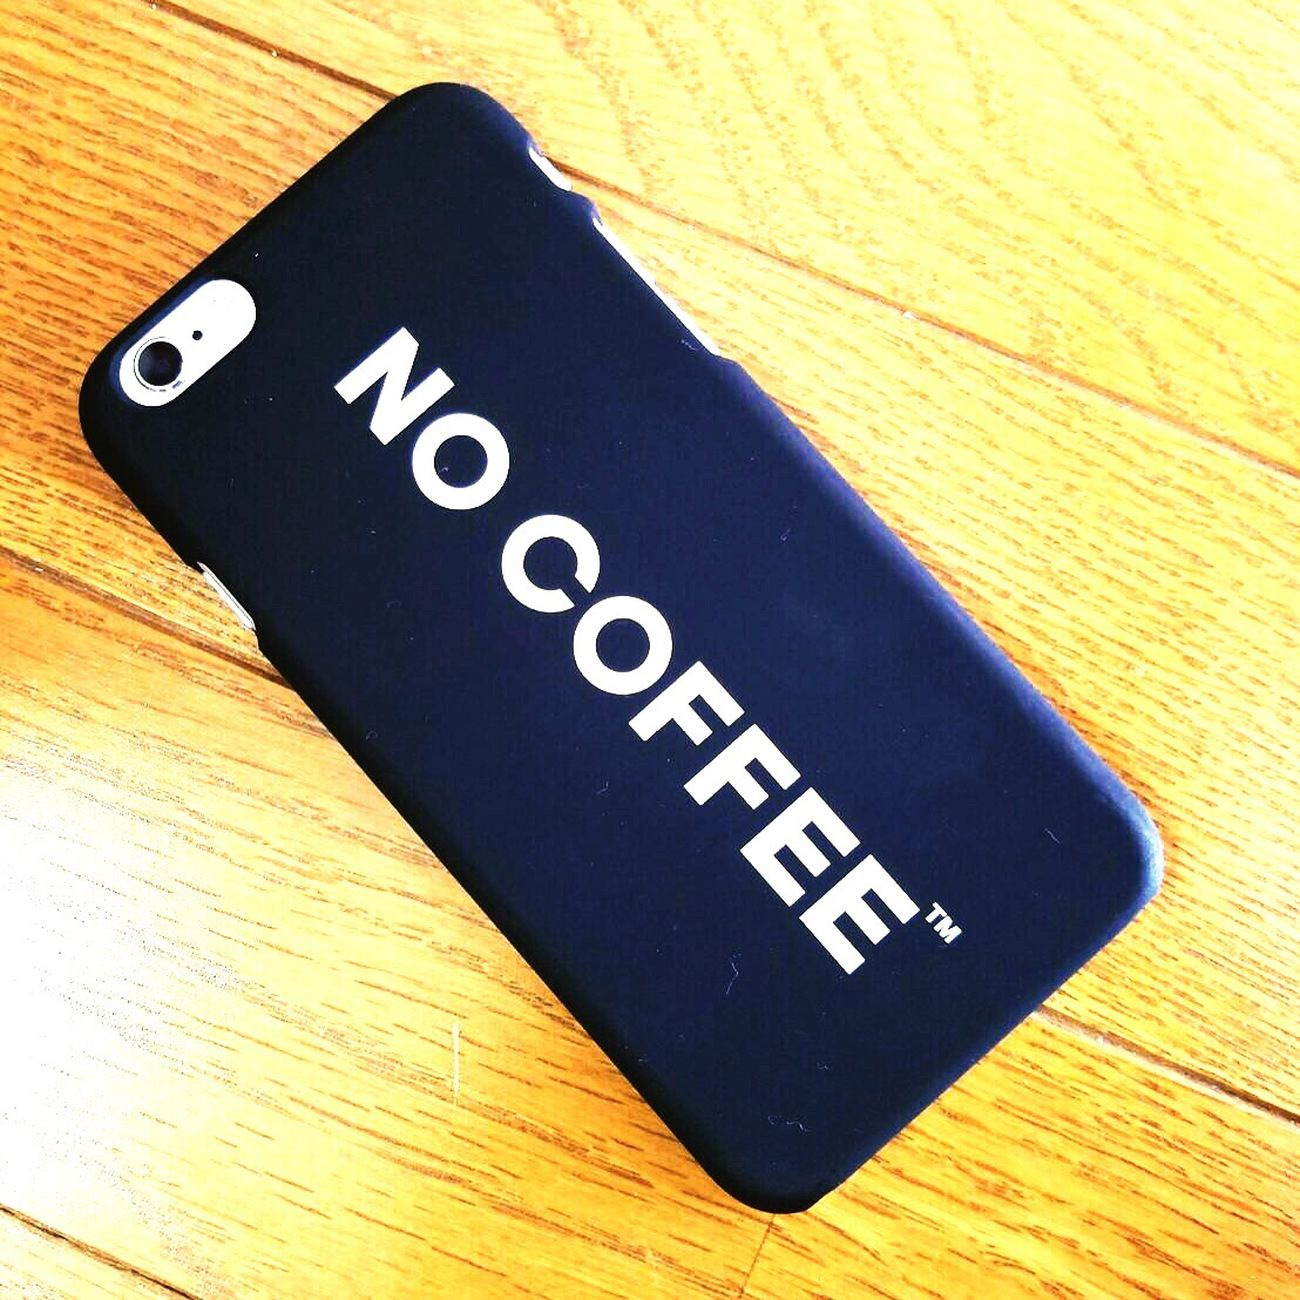 Close-up Table Day Coffee Nocoffee Nocoffeenowork Nocoffeenoworkee Nocoffeenolife IPhone Iphone6s アイフォン